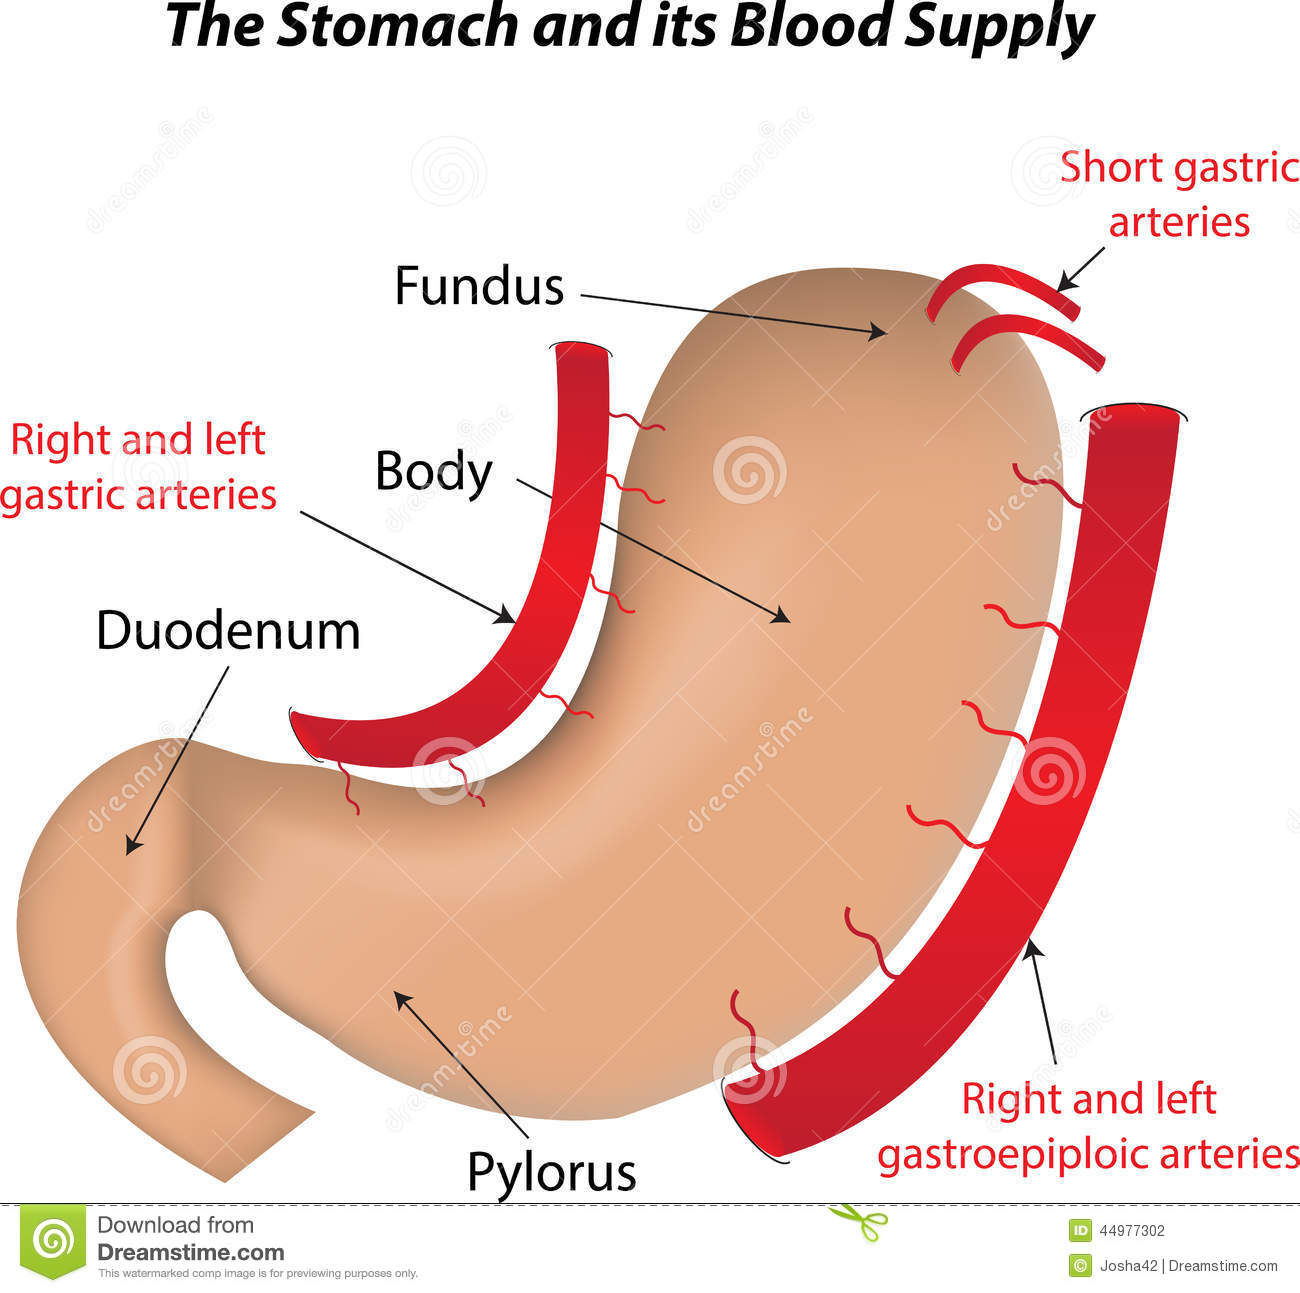 diagram of radioimmunoassay the stomach and its blood supply stock vector image  the stomach and its blood supply stock vector image